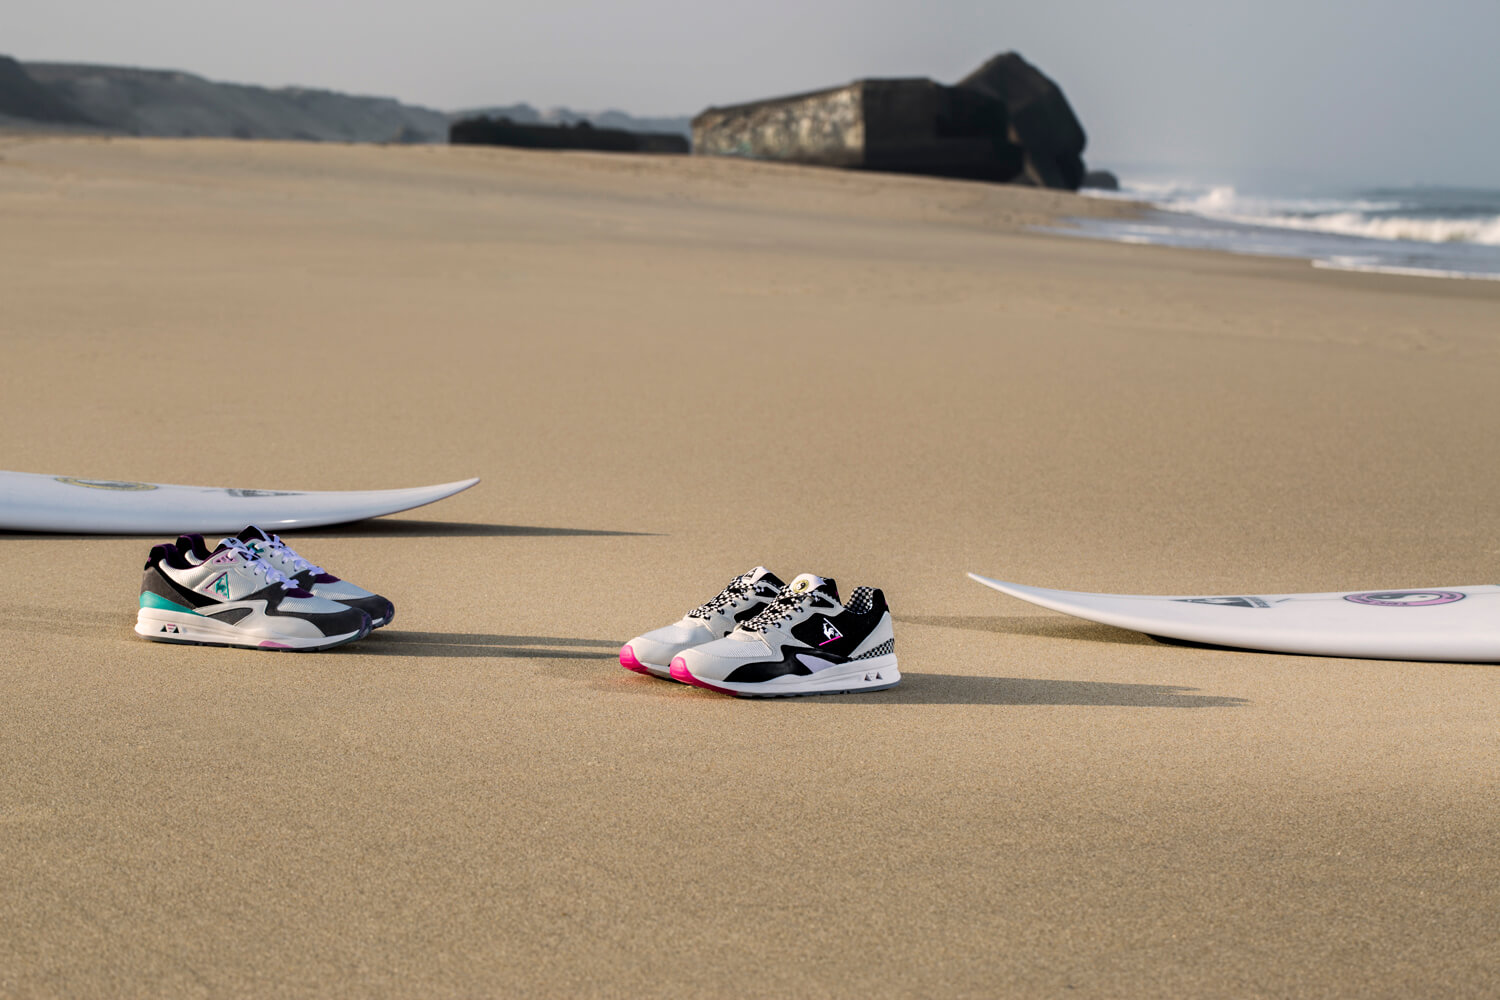 Le Coq Sportif x Town&Country Surf Designs LCSR800 sneaker release pack